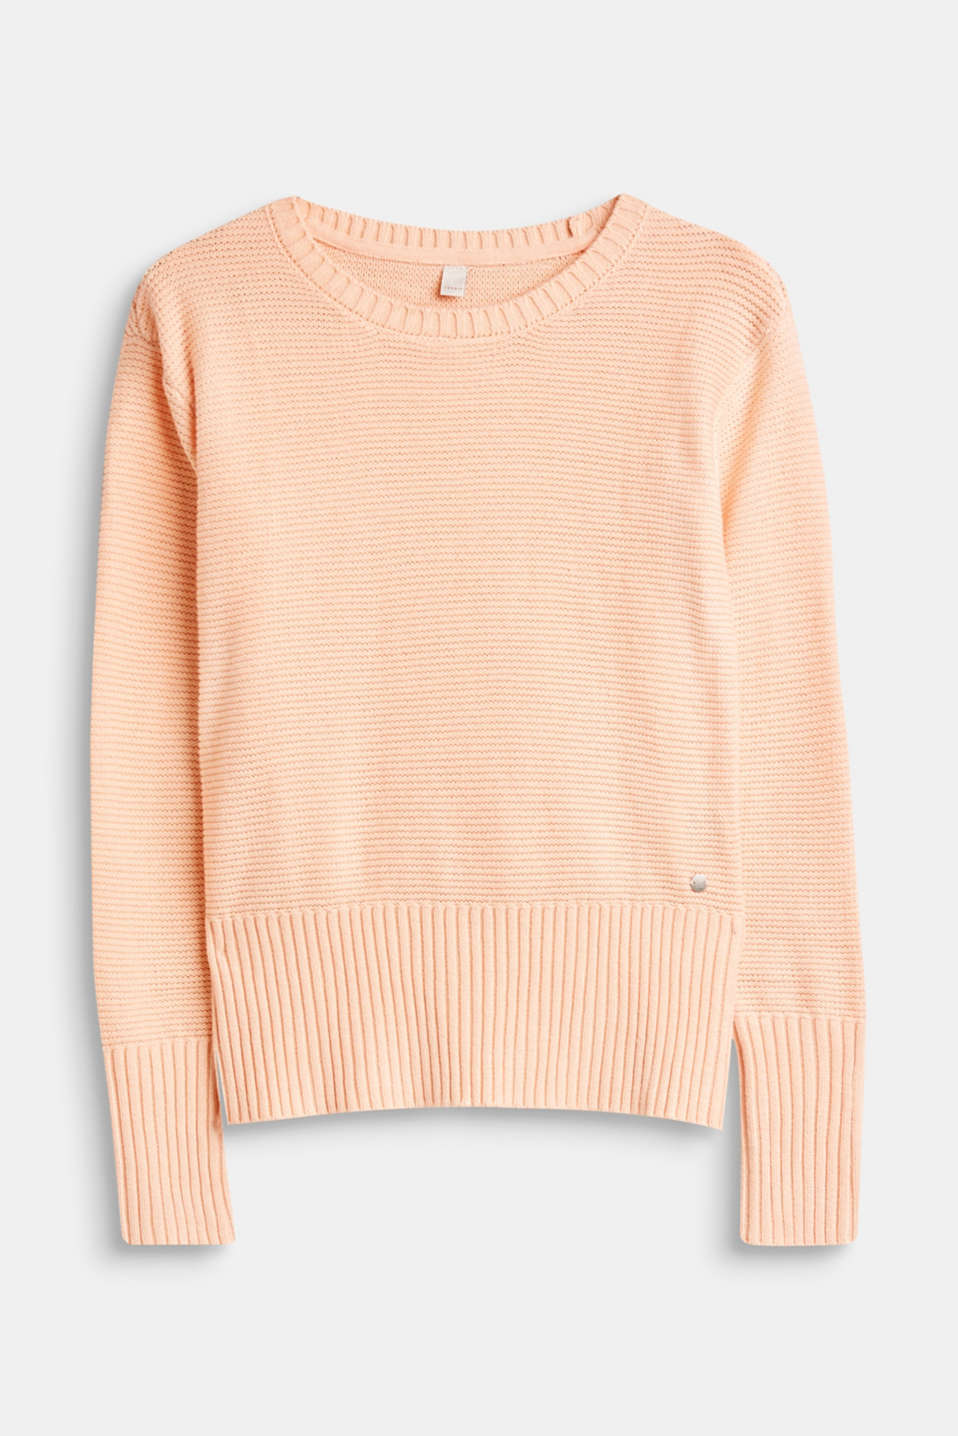 Esprit - Textured knit jumper